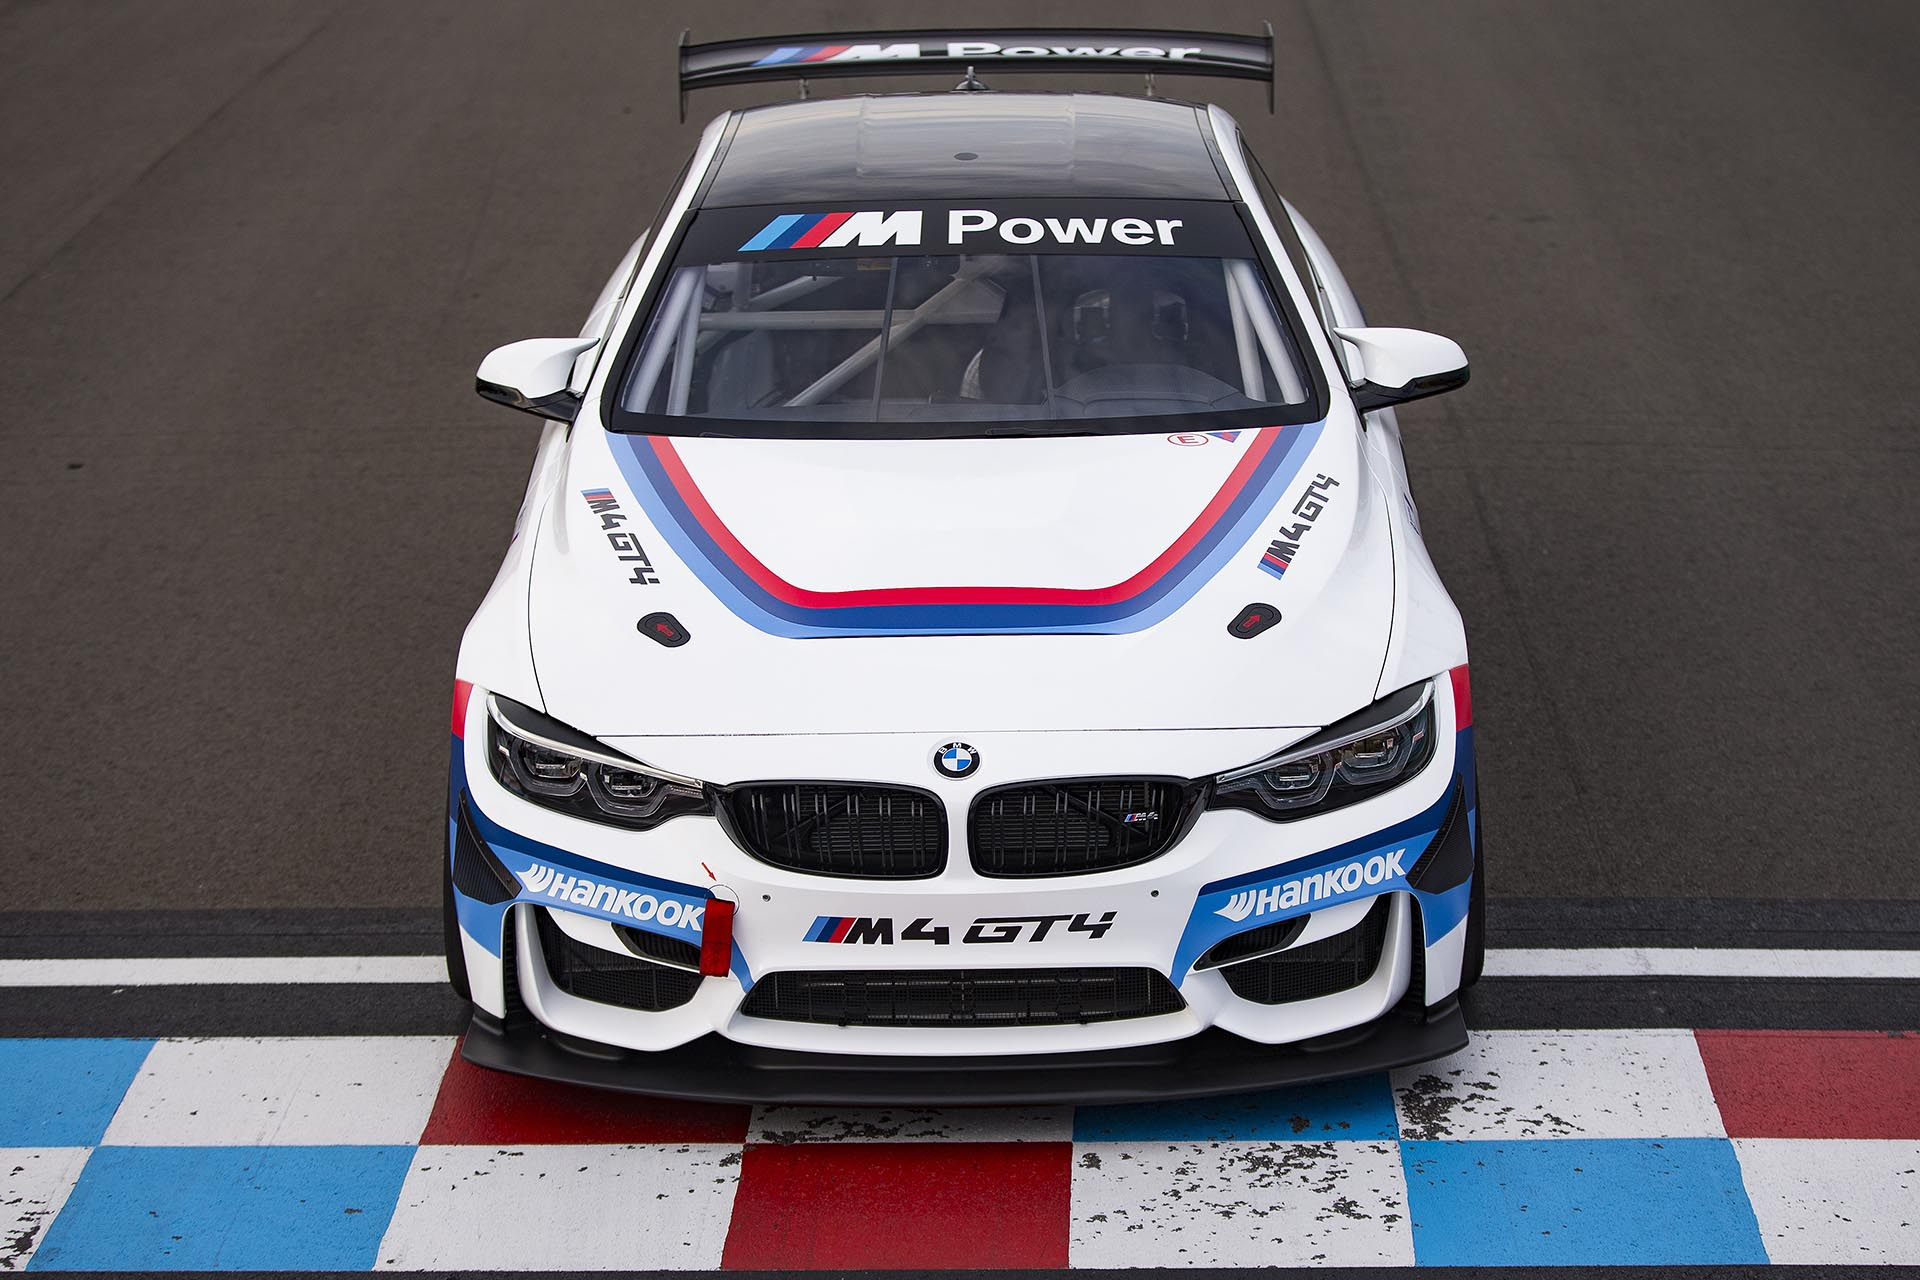 18_BMW M4 GT4 front factory livery